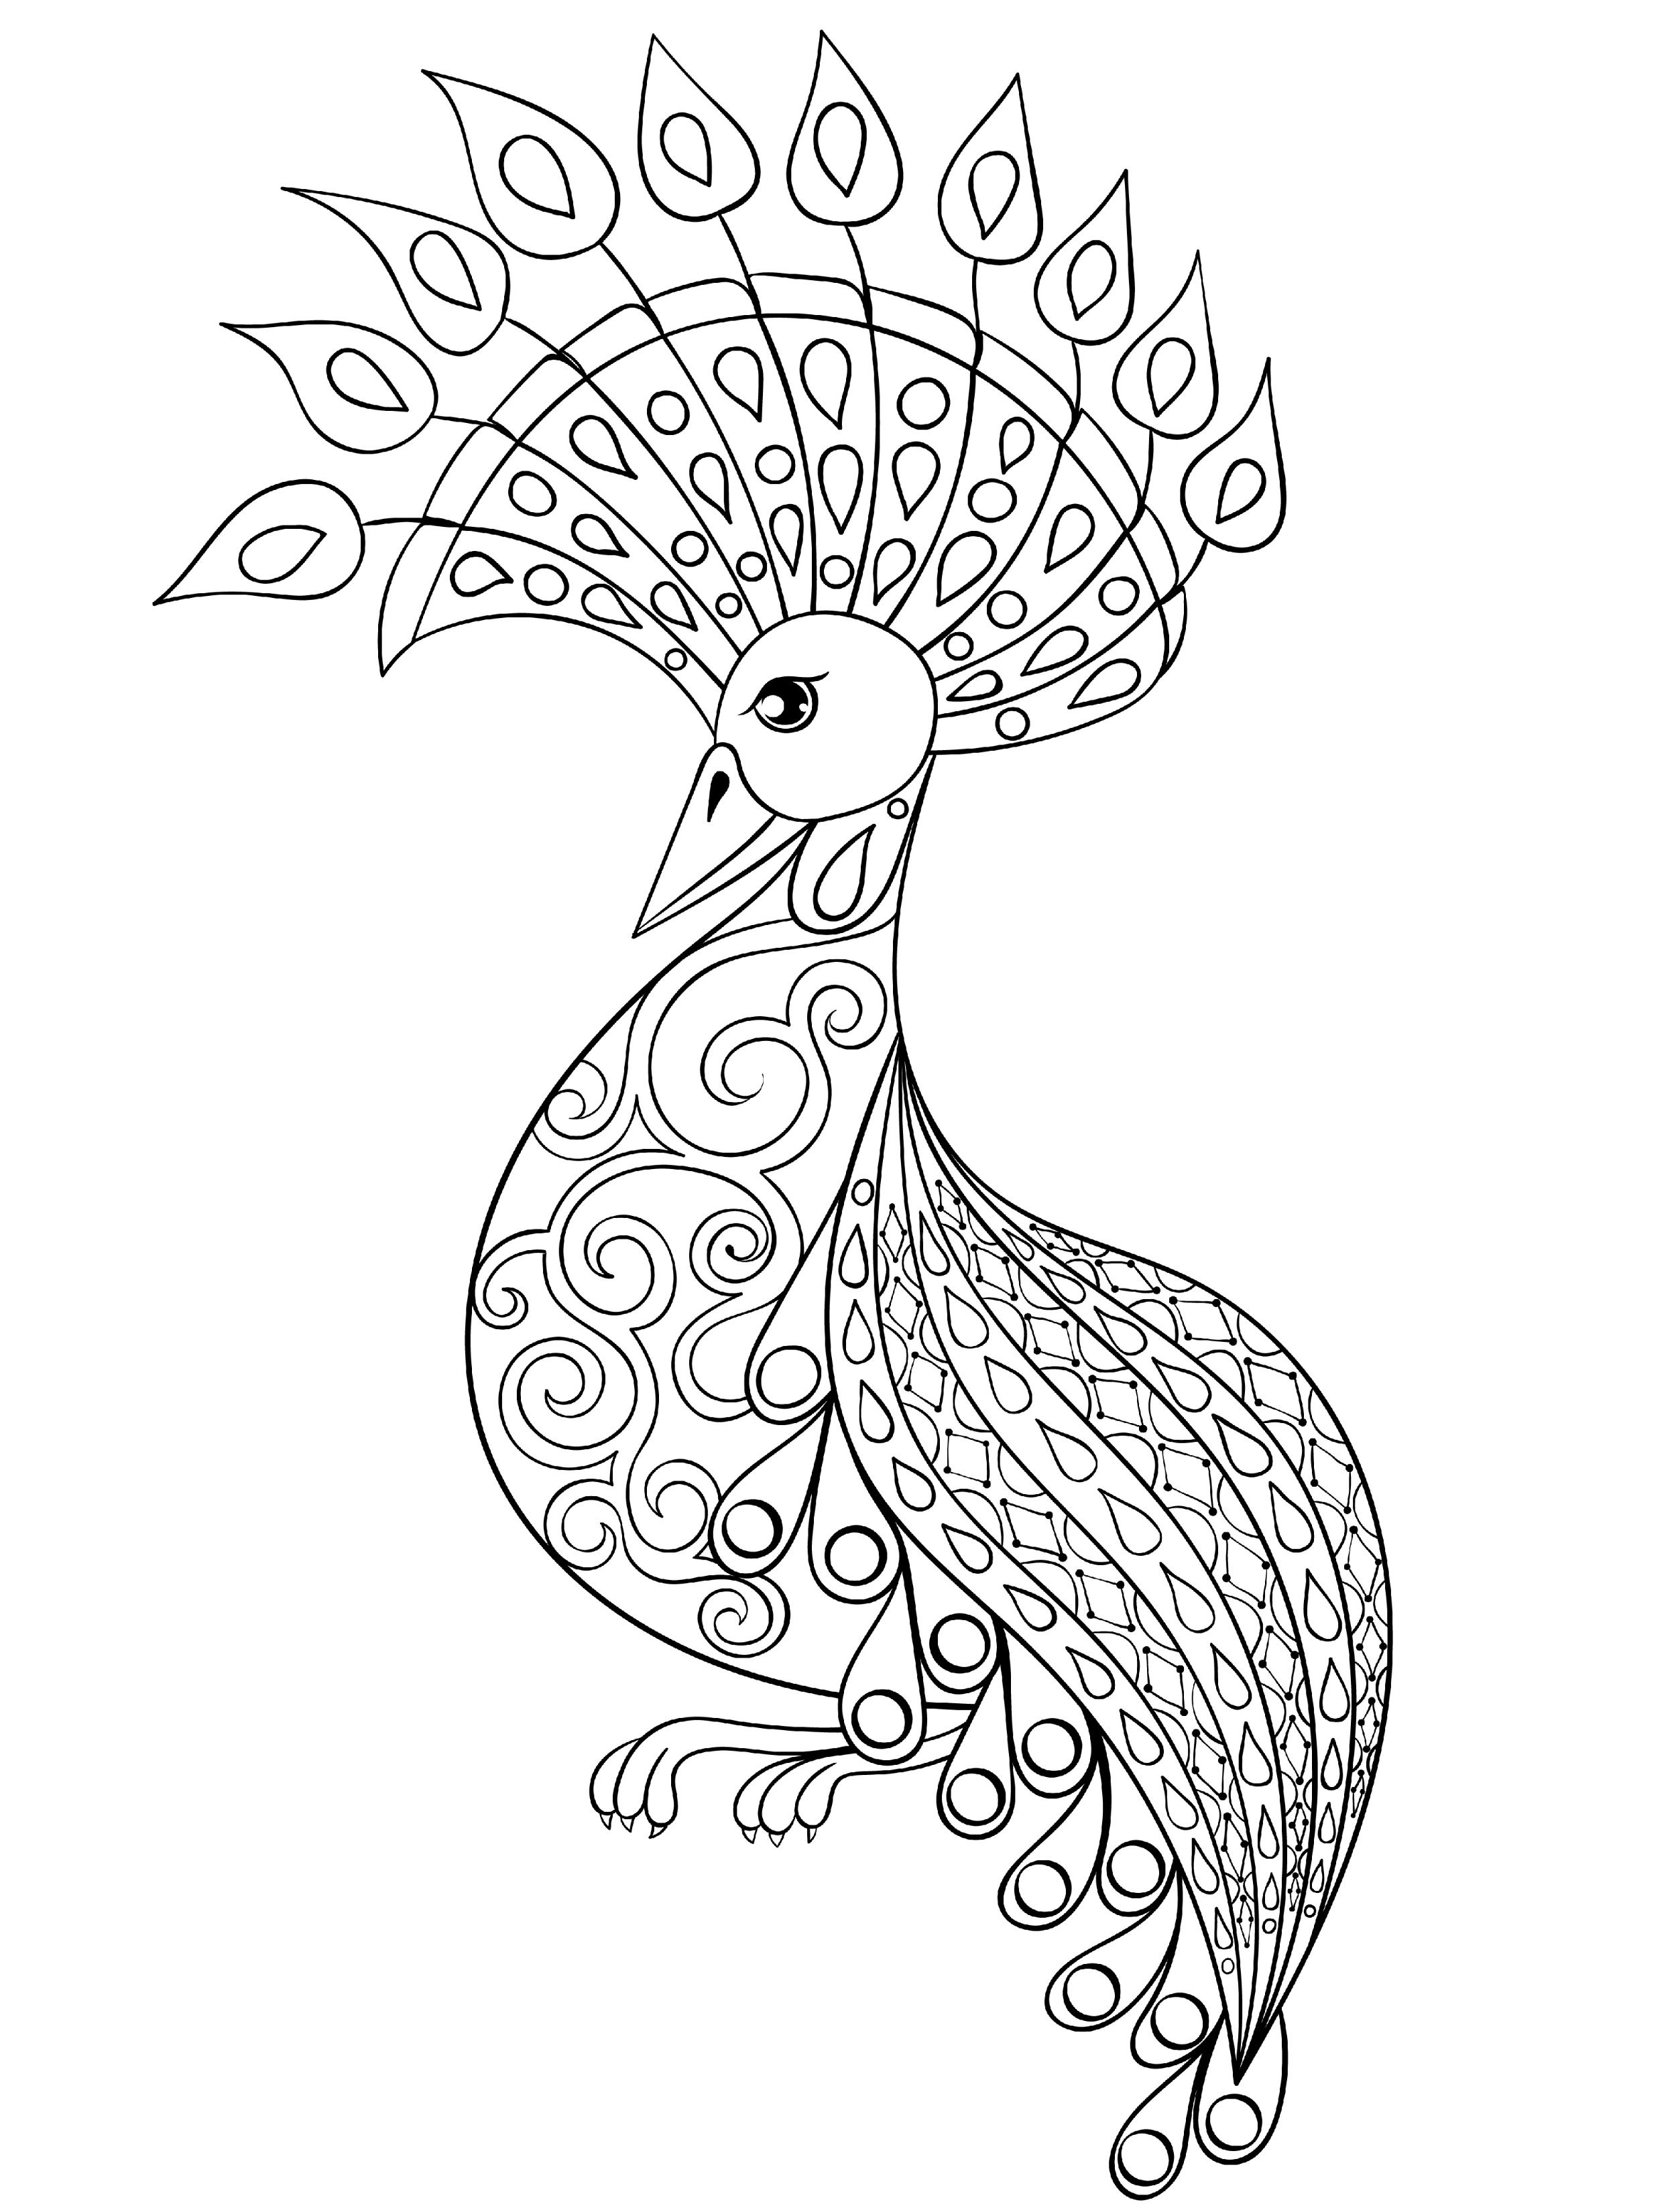 peacock coloring pages for adults pin on precious peacocks coloring pages adults for peacock